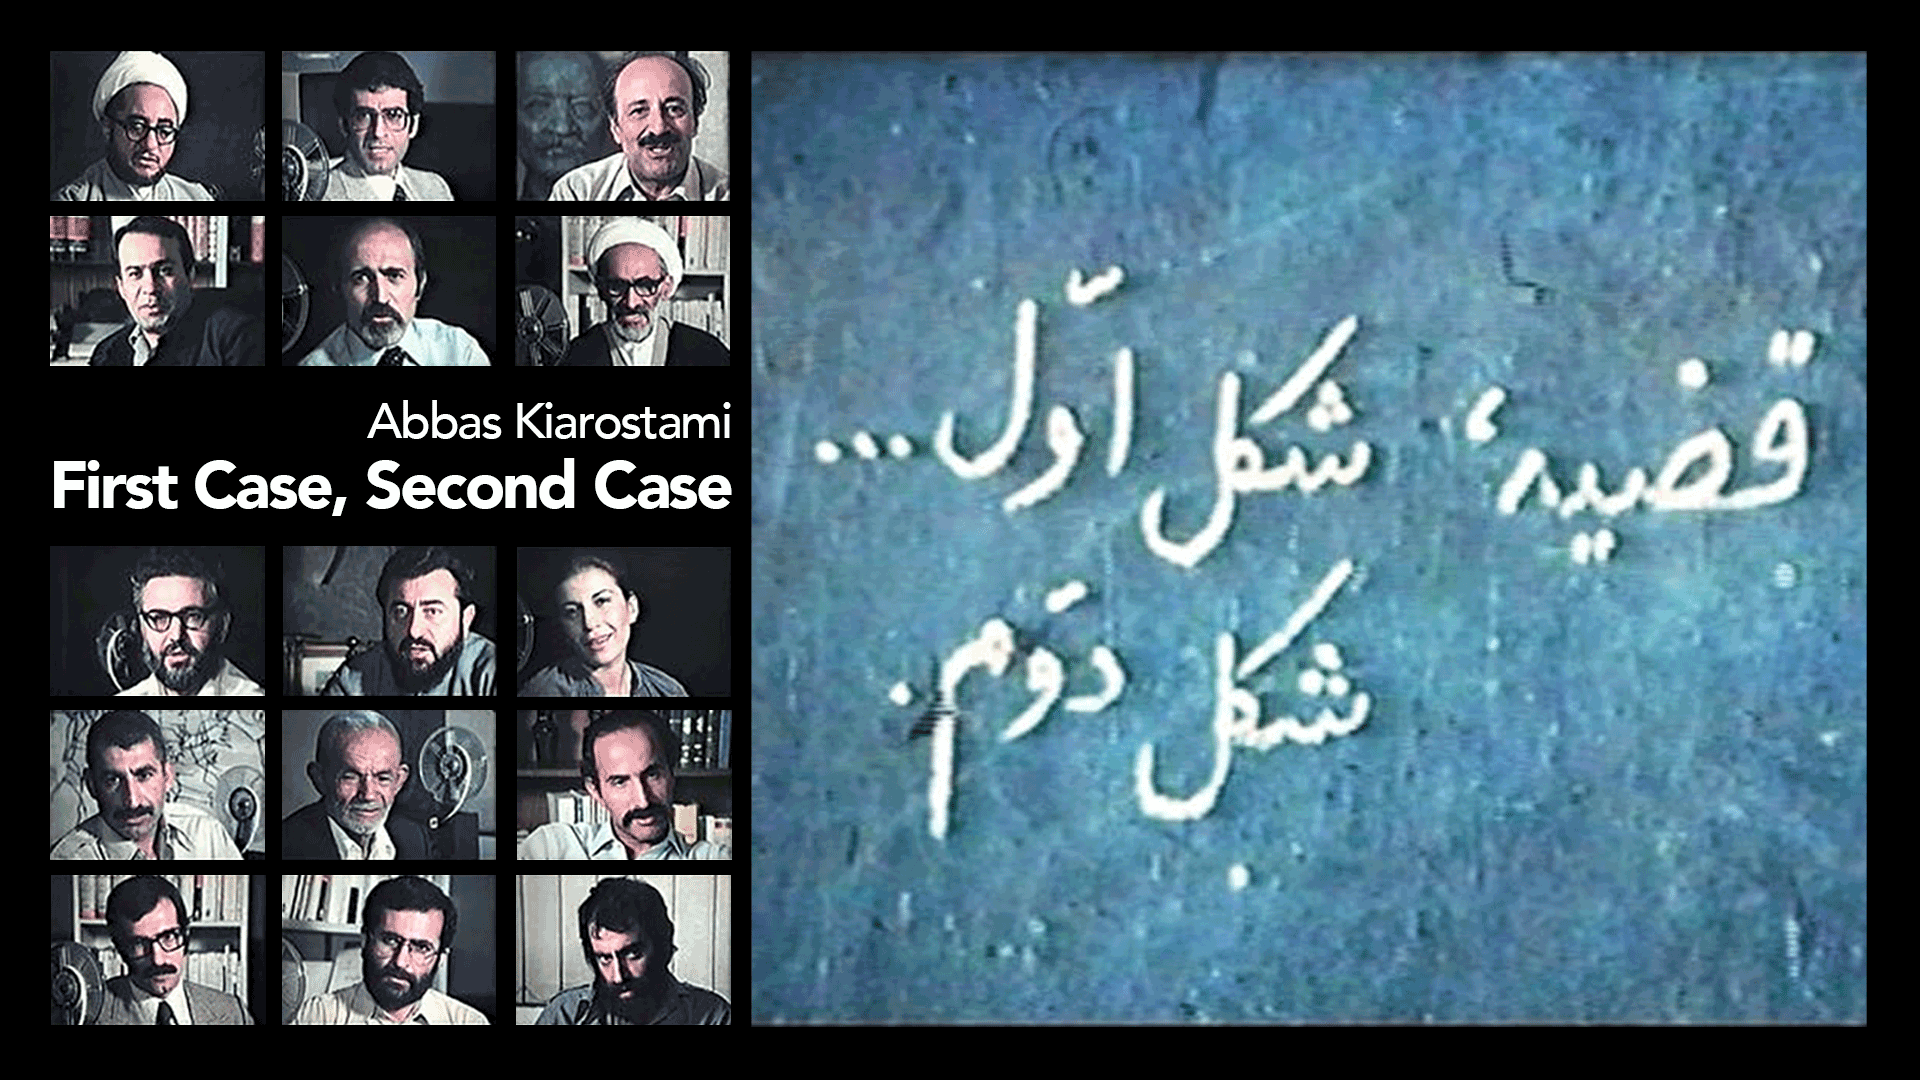 First Case, Second Case (1979)